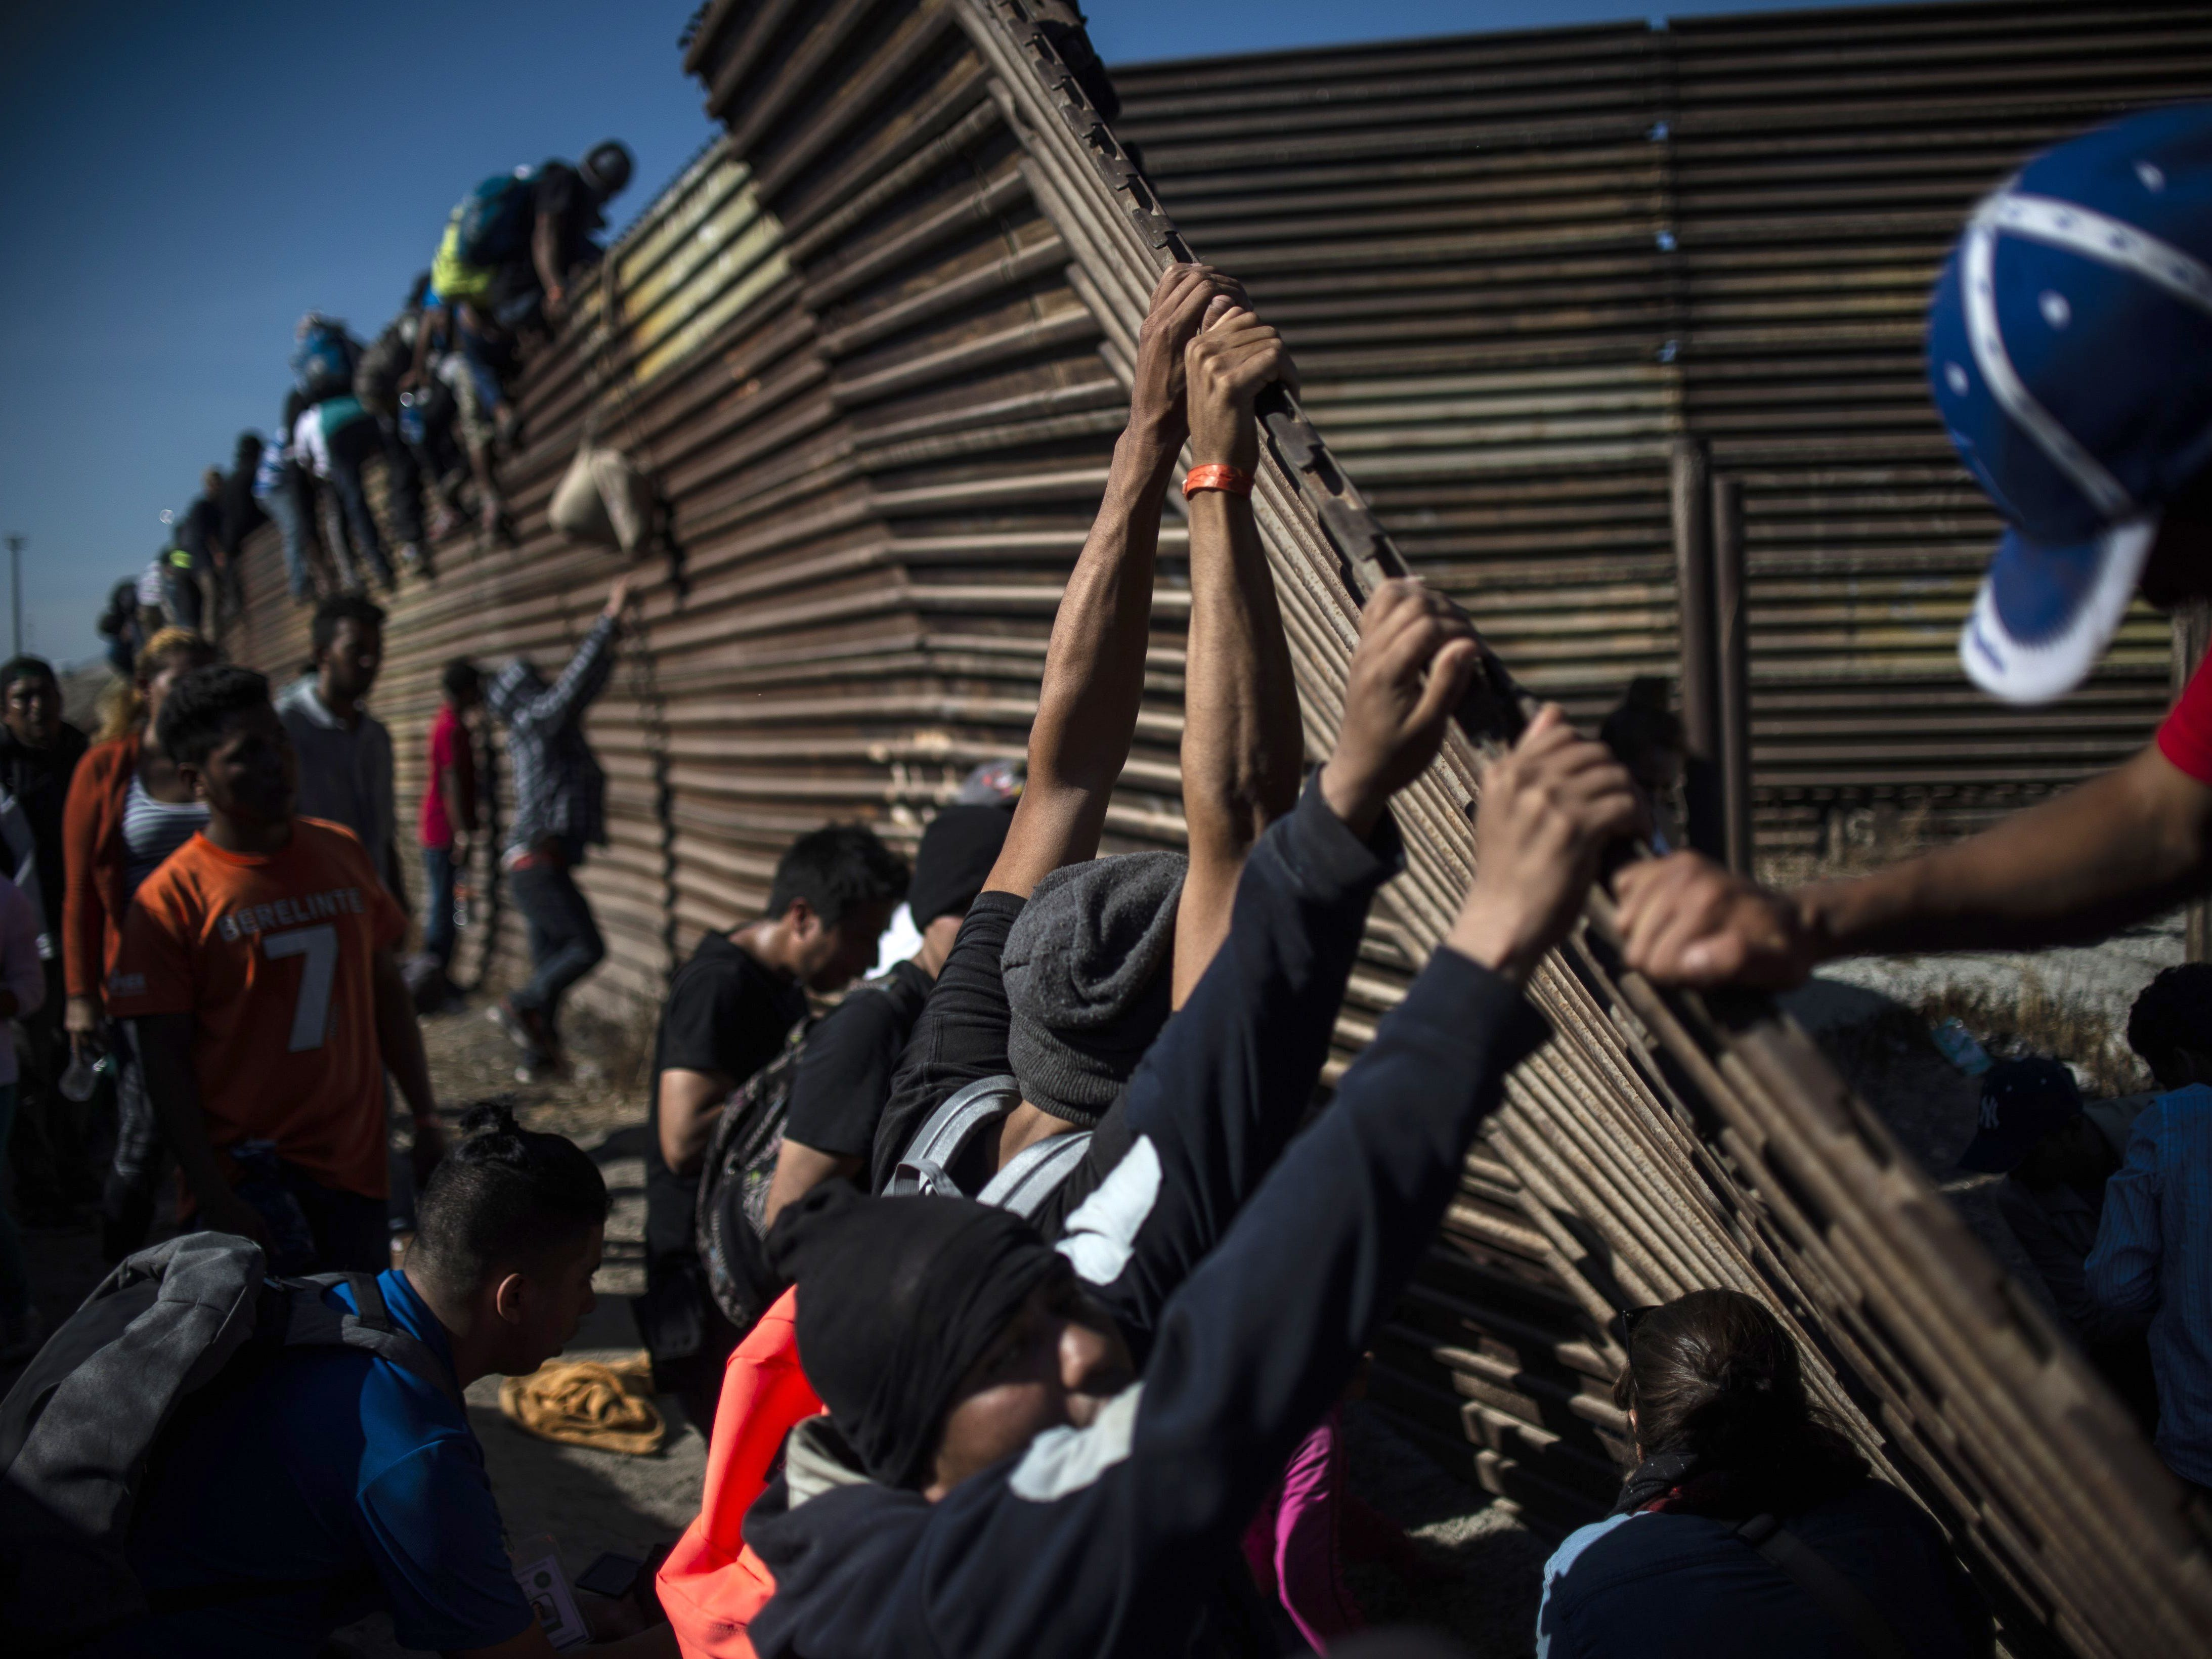 A group of Central American migrants climb the border fence between Mexico and the United States as others try to bring it down, near El Chaparral border crossing, in Tijuana, Baja California State, Mexico, on Nov. 25, 2018.